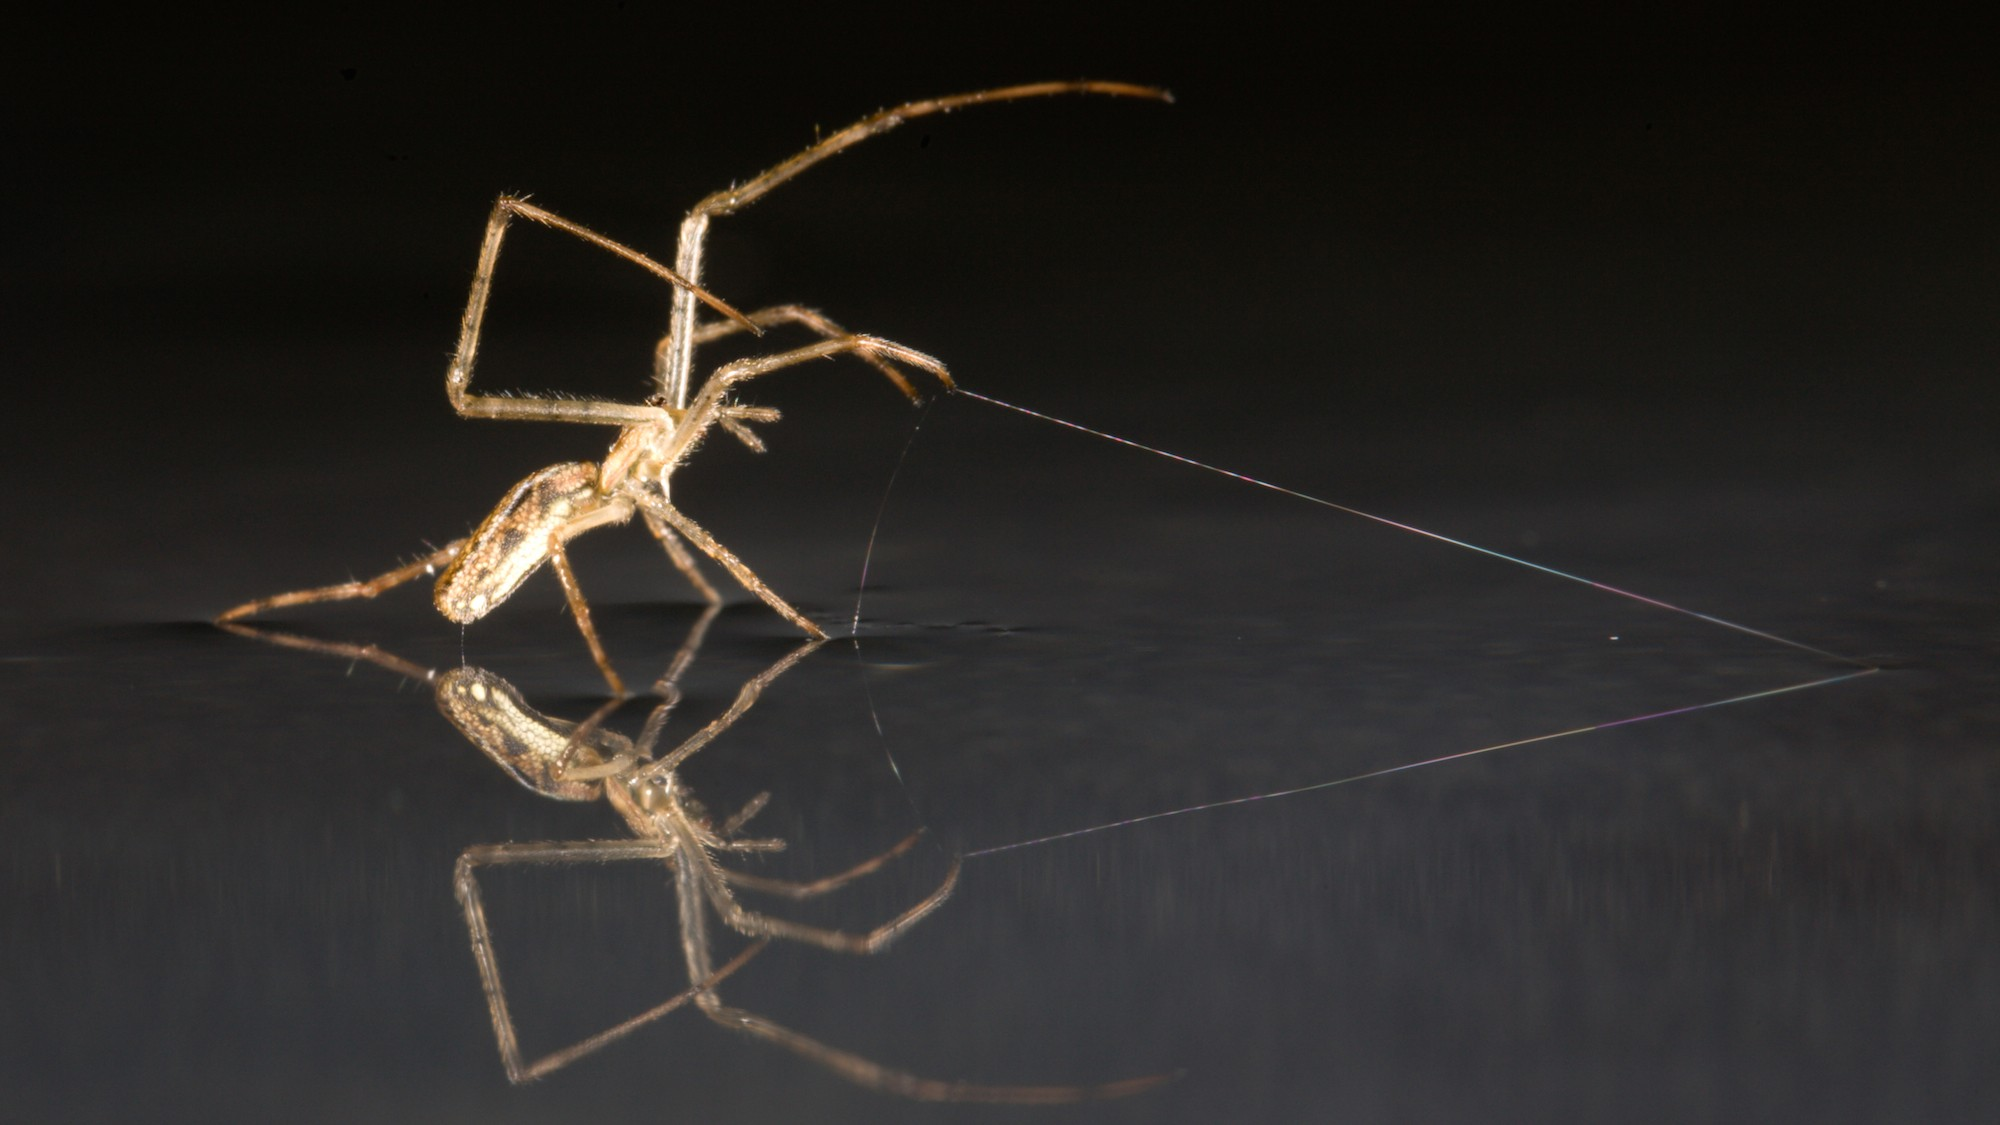 How Spiders Can Cruise Across Water